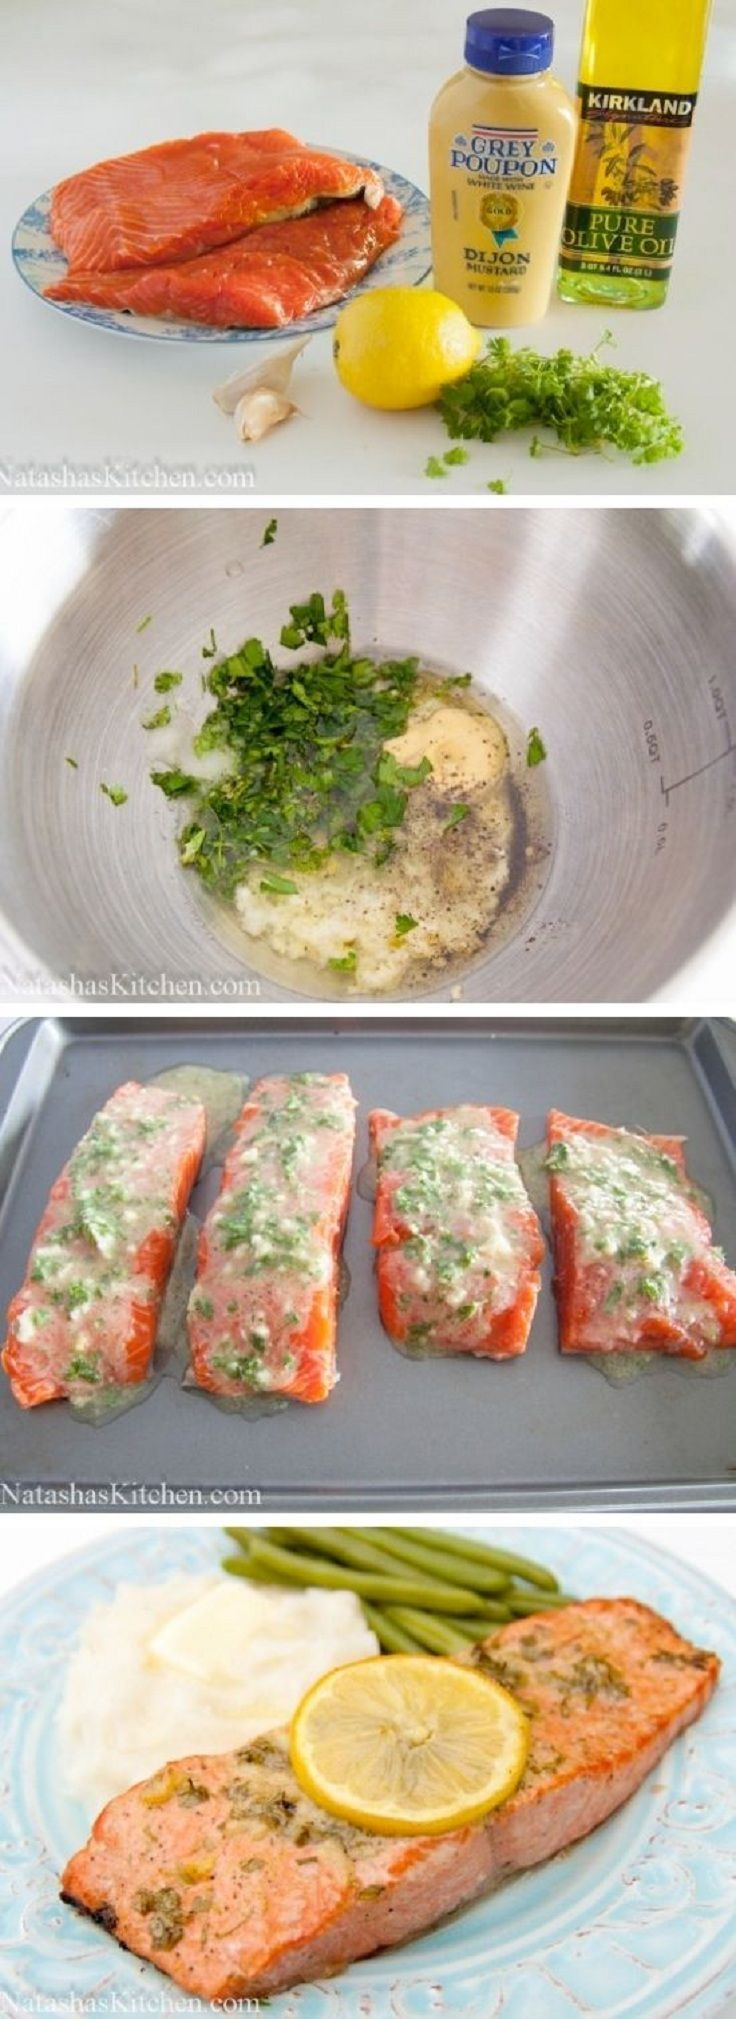 TOP 10 Salmon recipes. I love salmon, this is perfect!